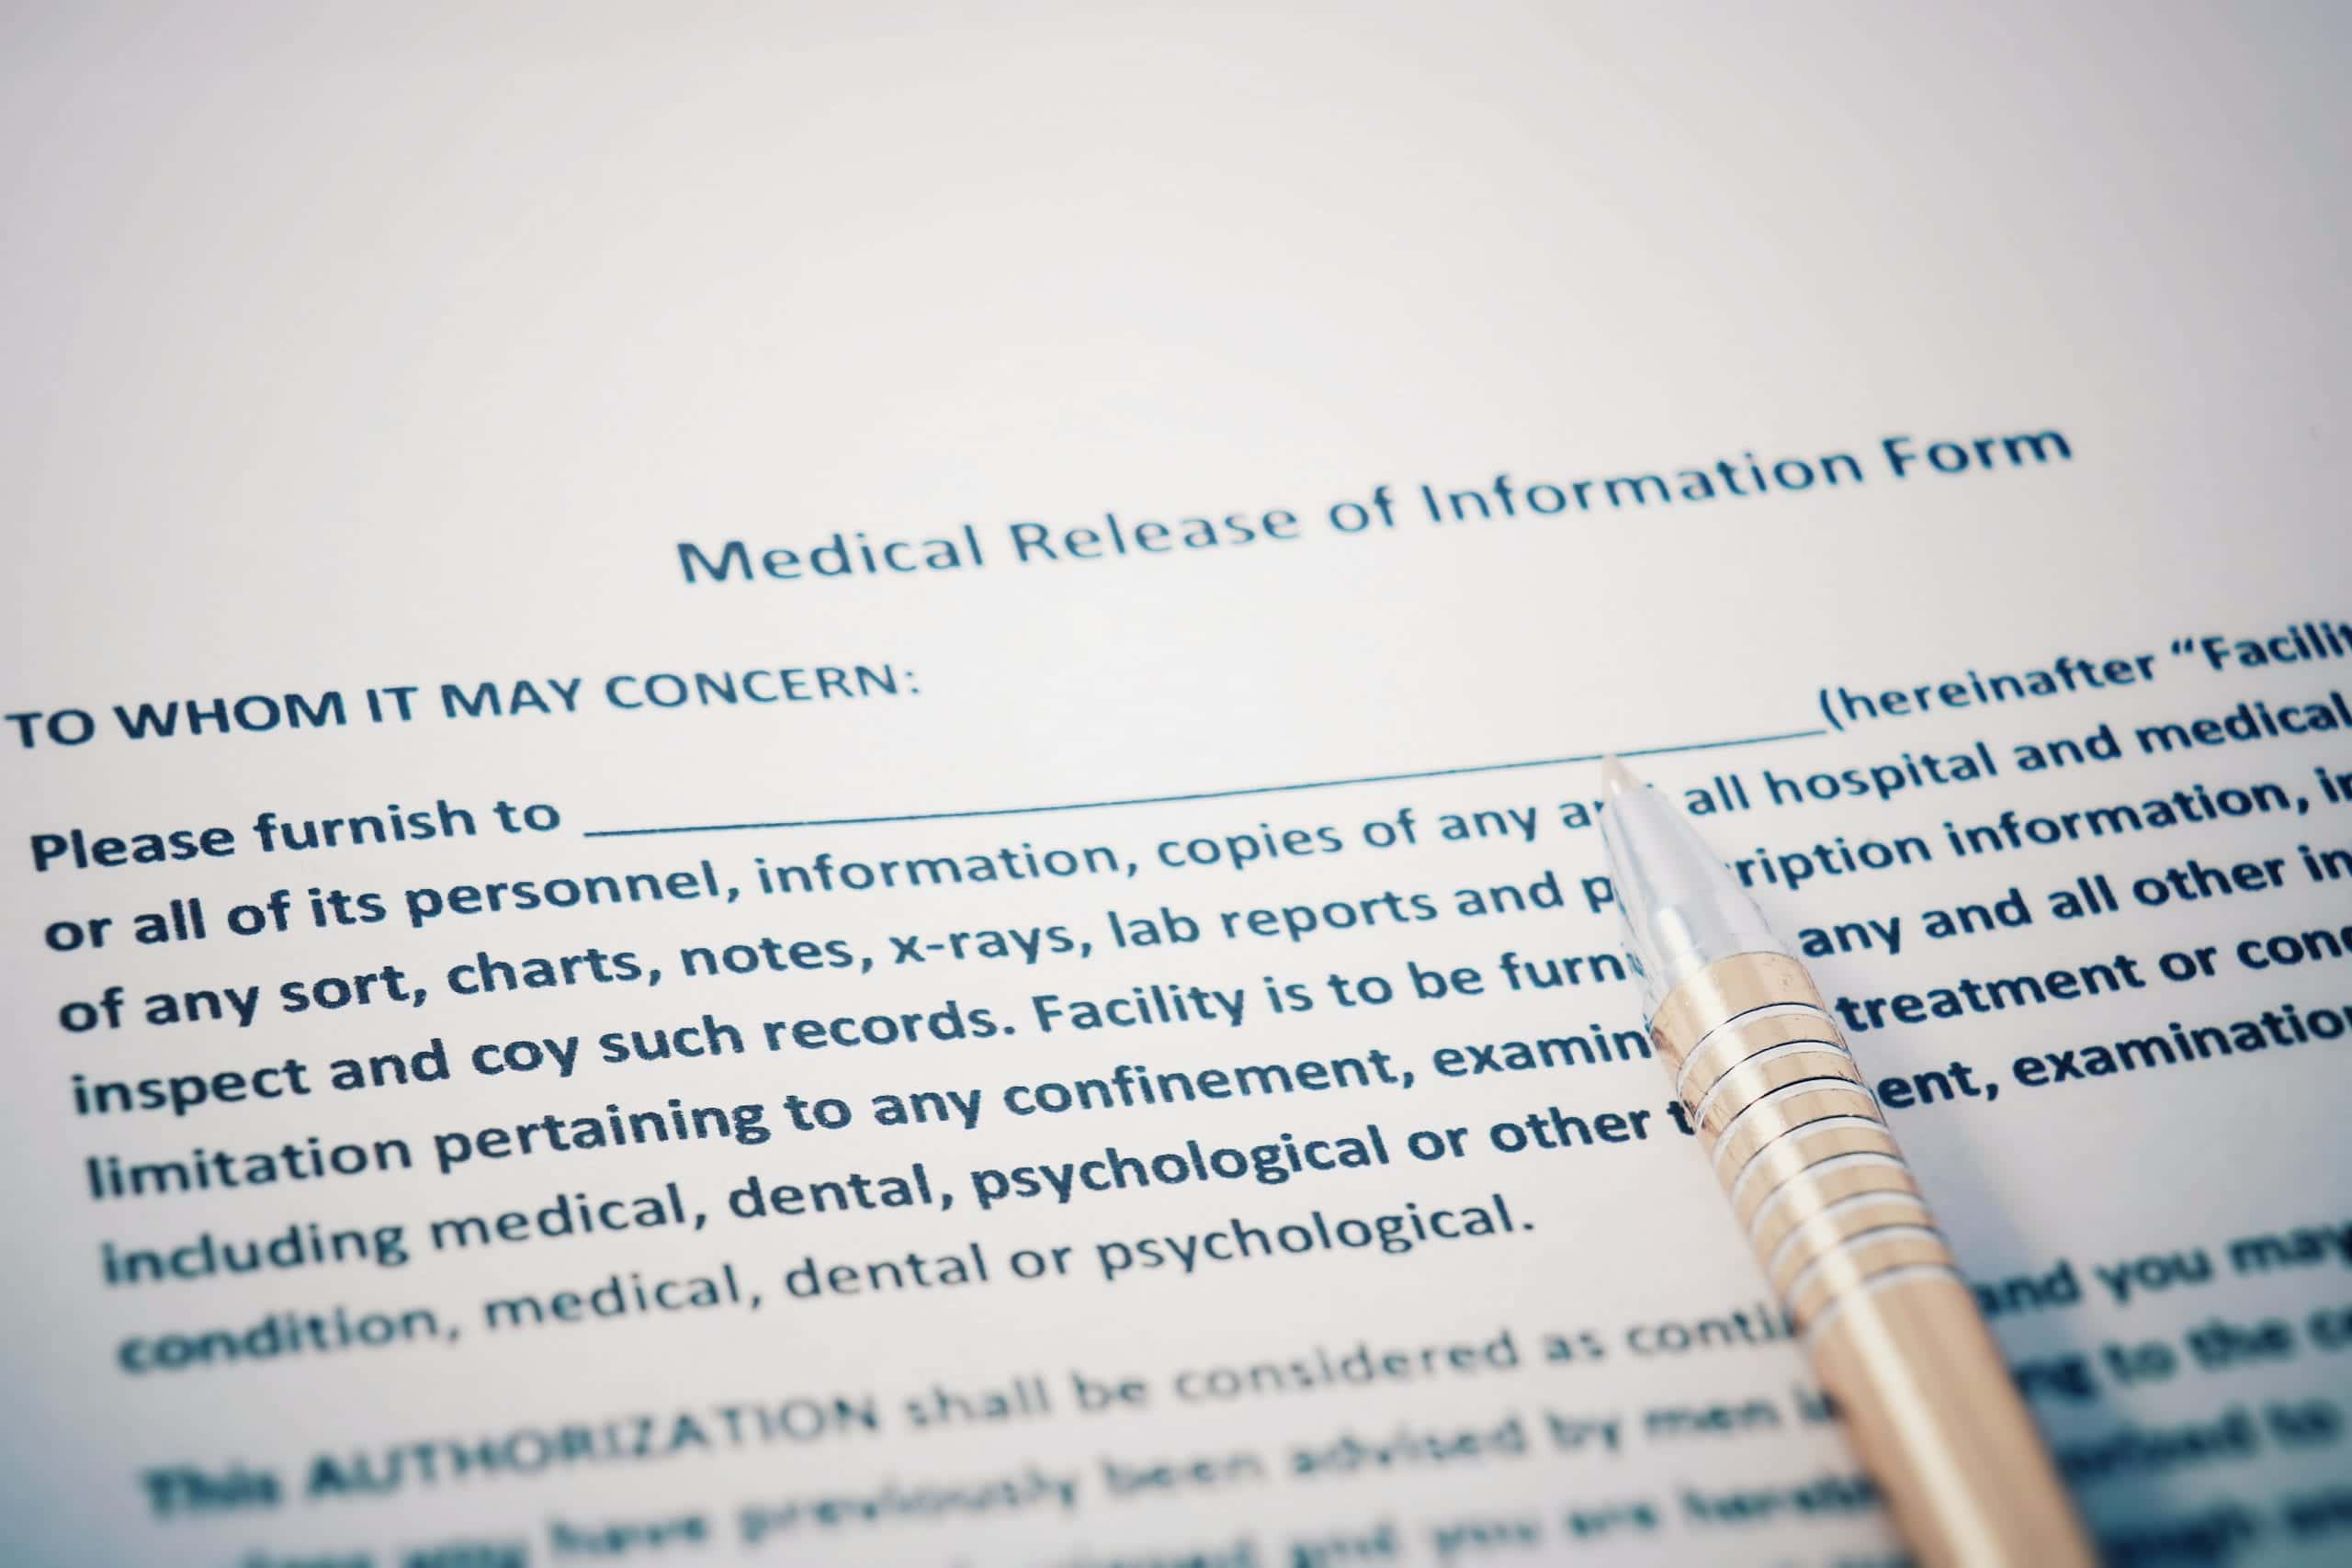 Release form for medical records